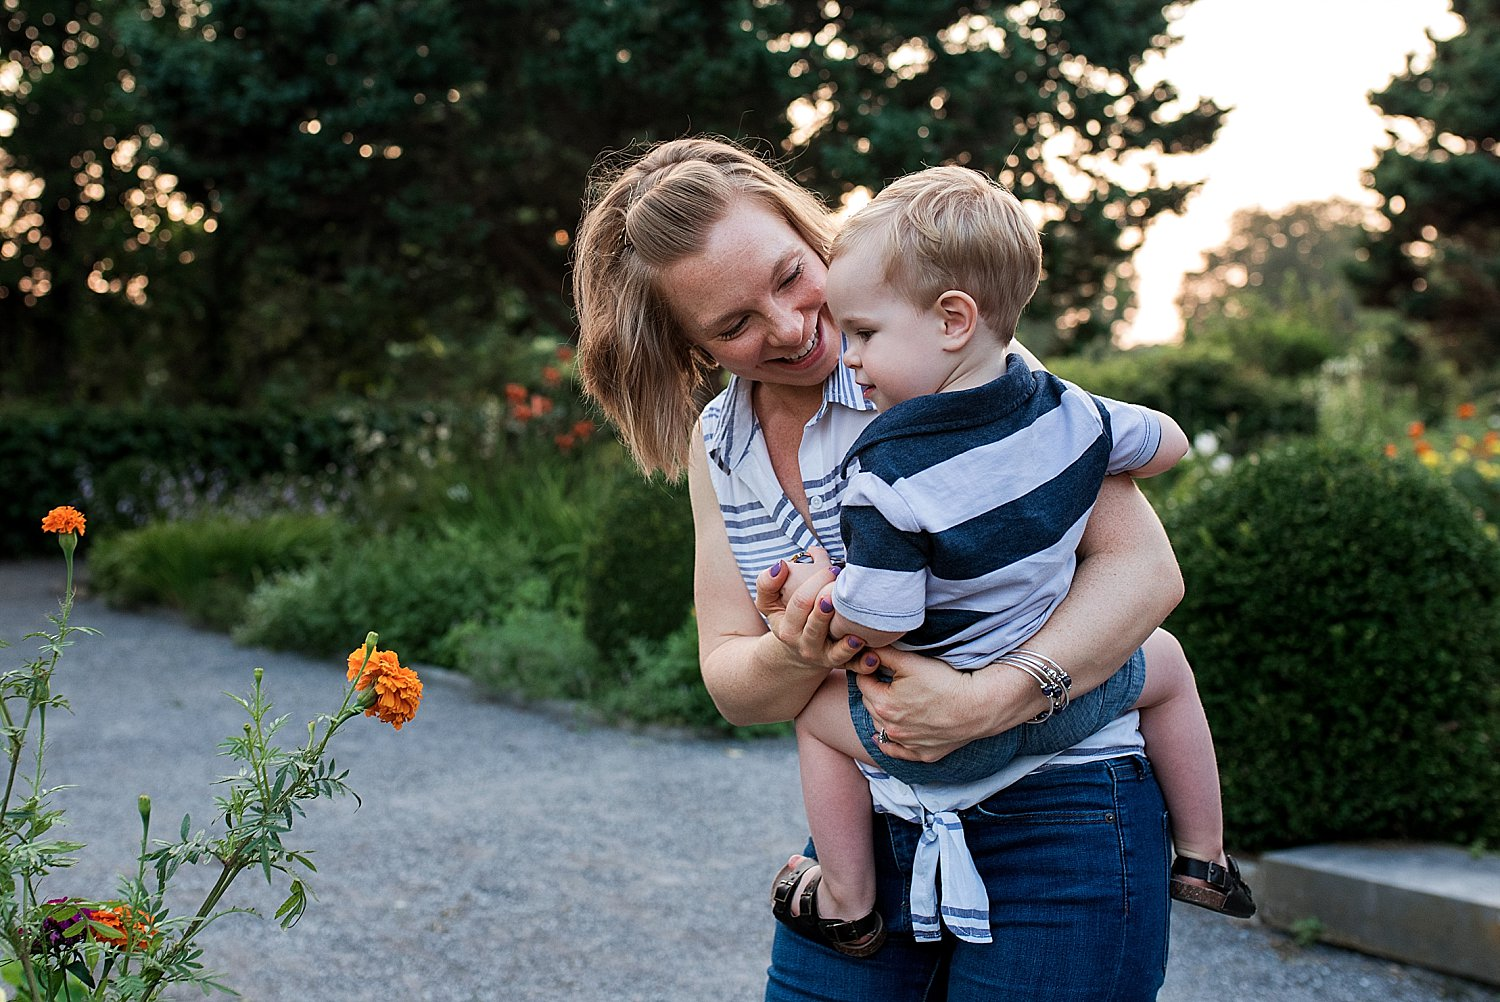 Mother holding toddler son in garden at Harkness Memorial Park in Waterford, CT